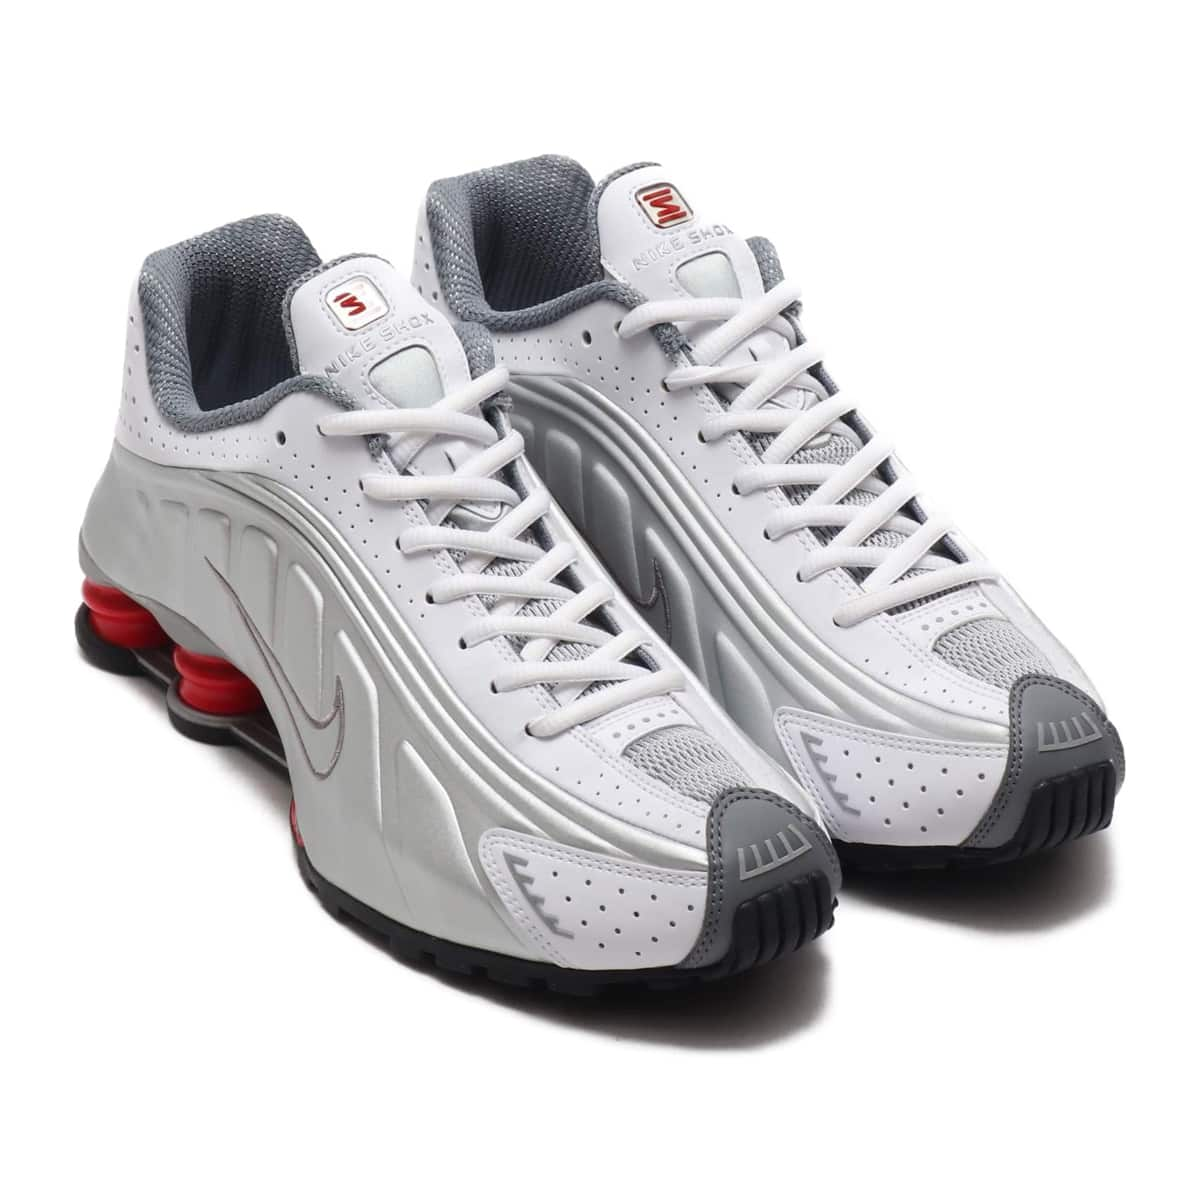 best service 72e1f 8615c NIKE SHOX R4 WHITE/METALLIC SILVER-COMET RED-BLACK